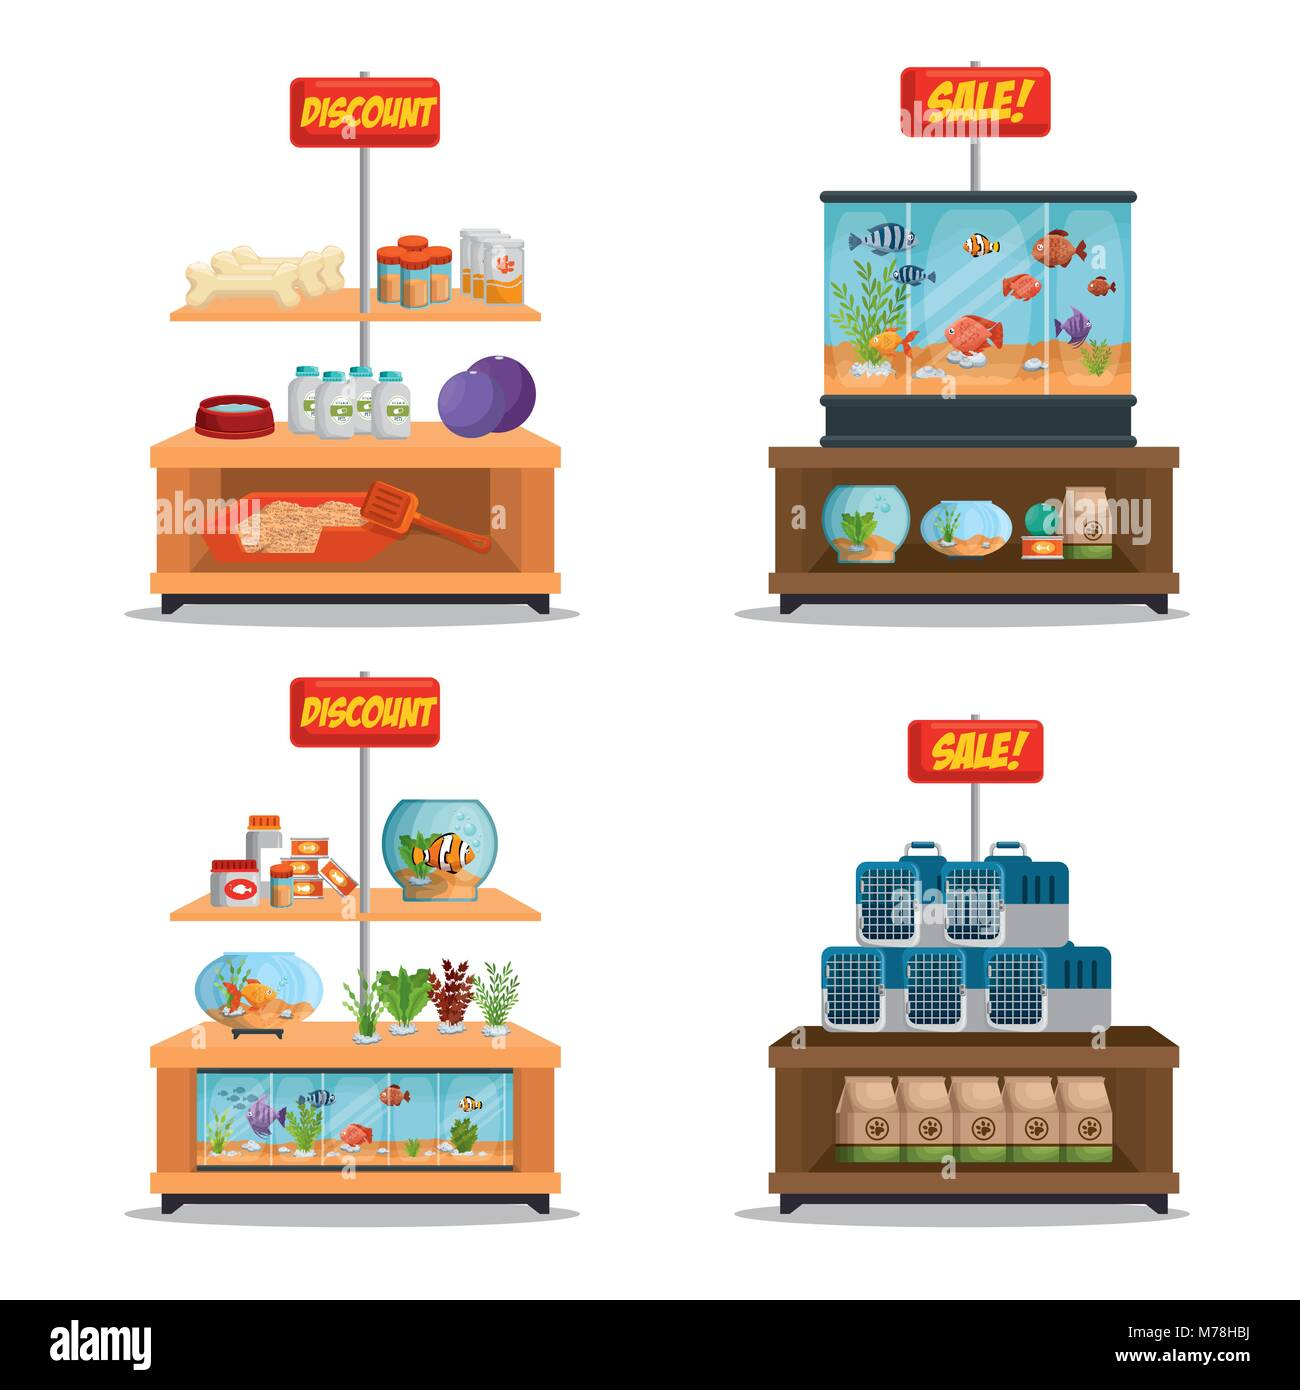 veterinary store shelvings set vector illustration design - Stock Image